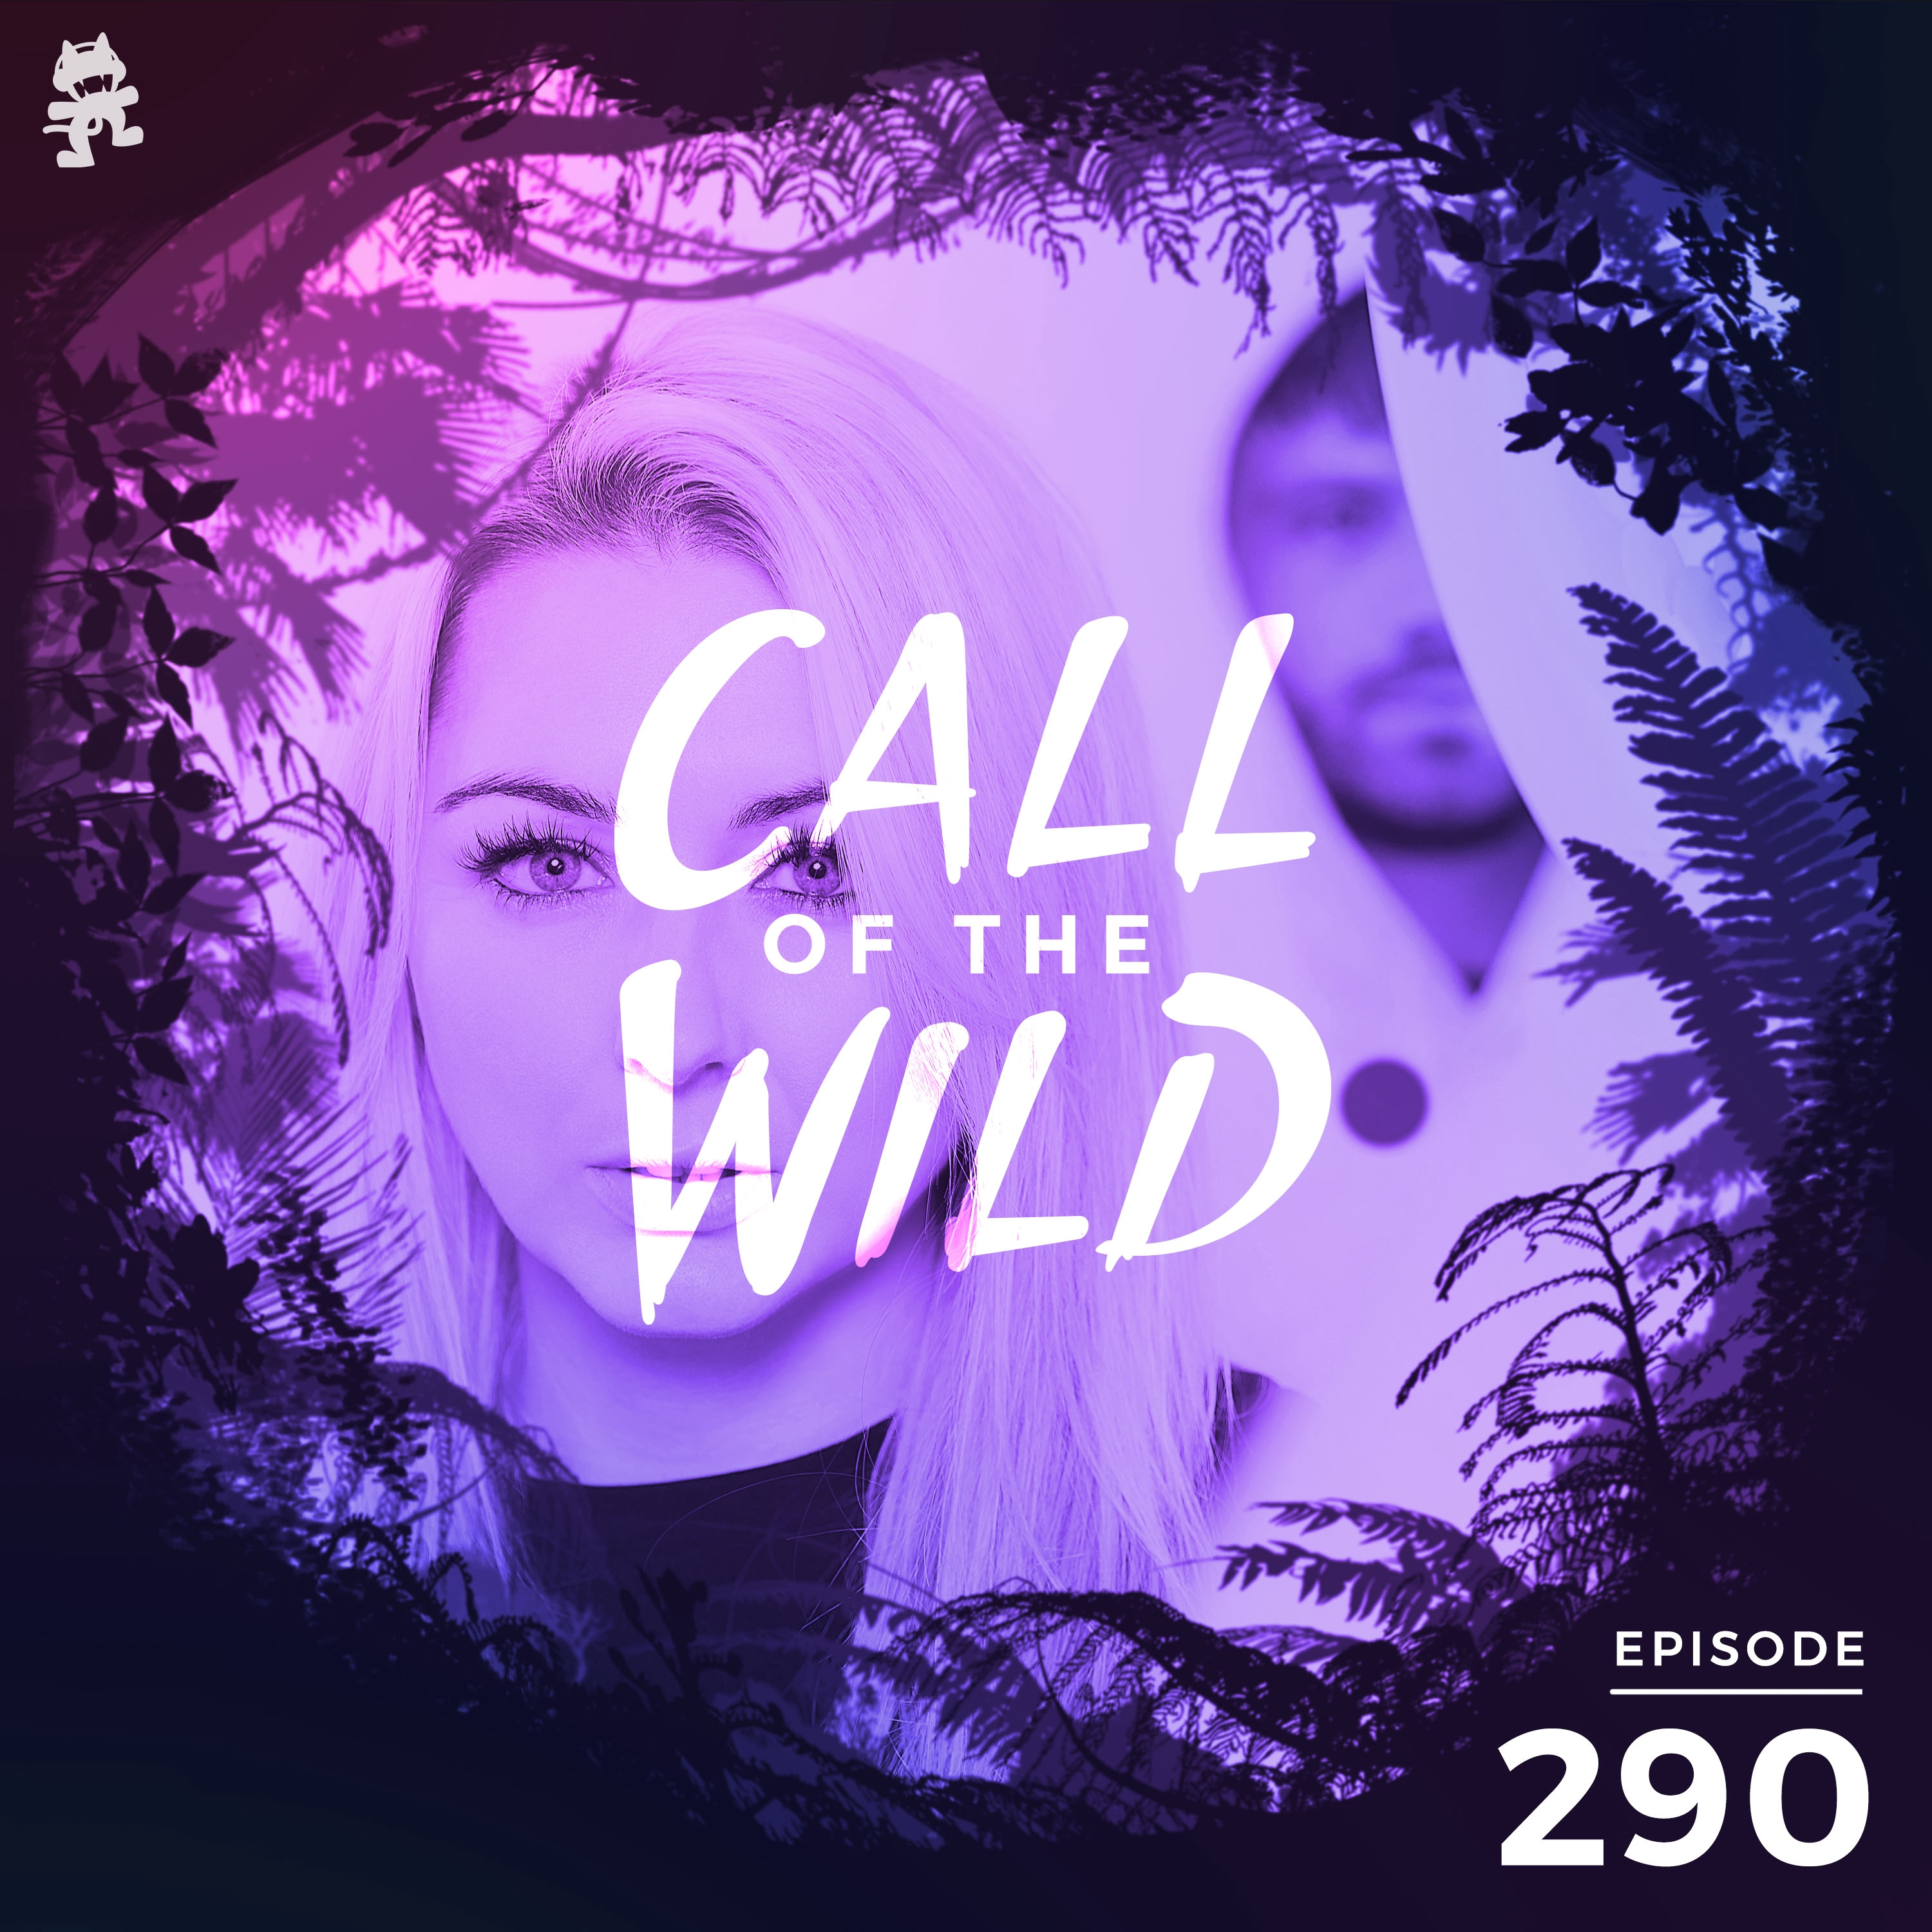 Monstercat: Call of the Wild - Episode 290